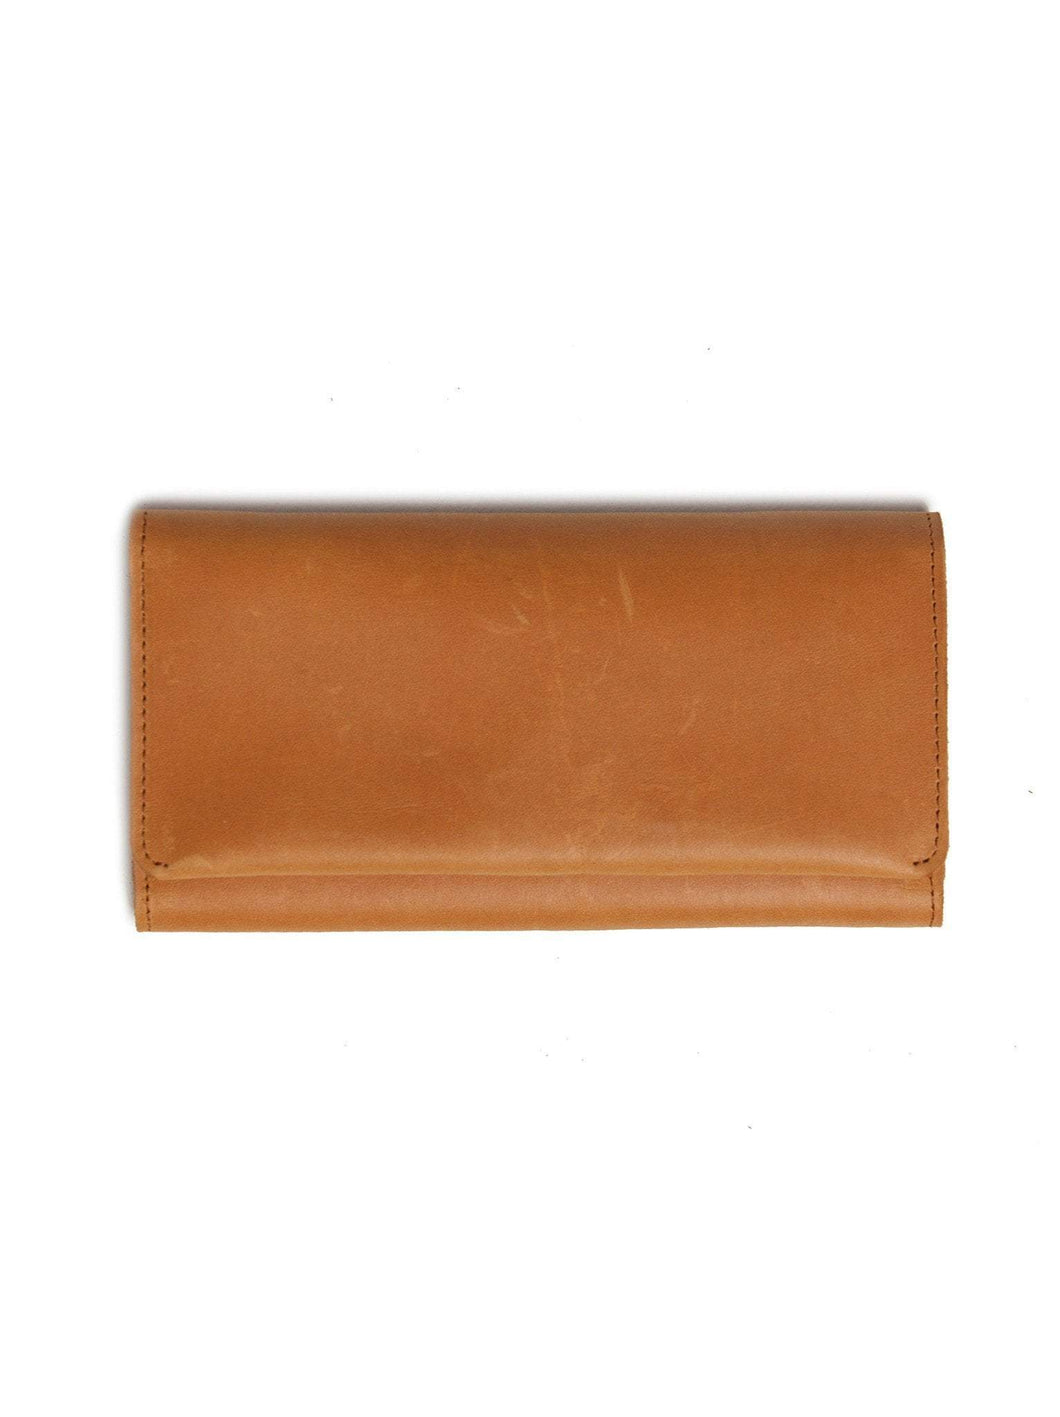 The Debre Wallet by ABLE